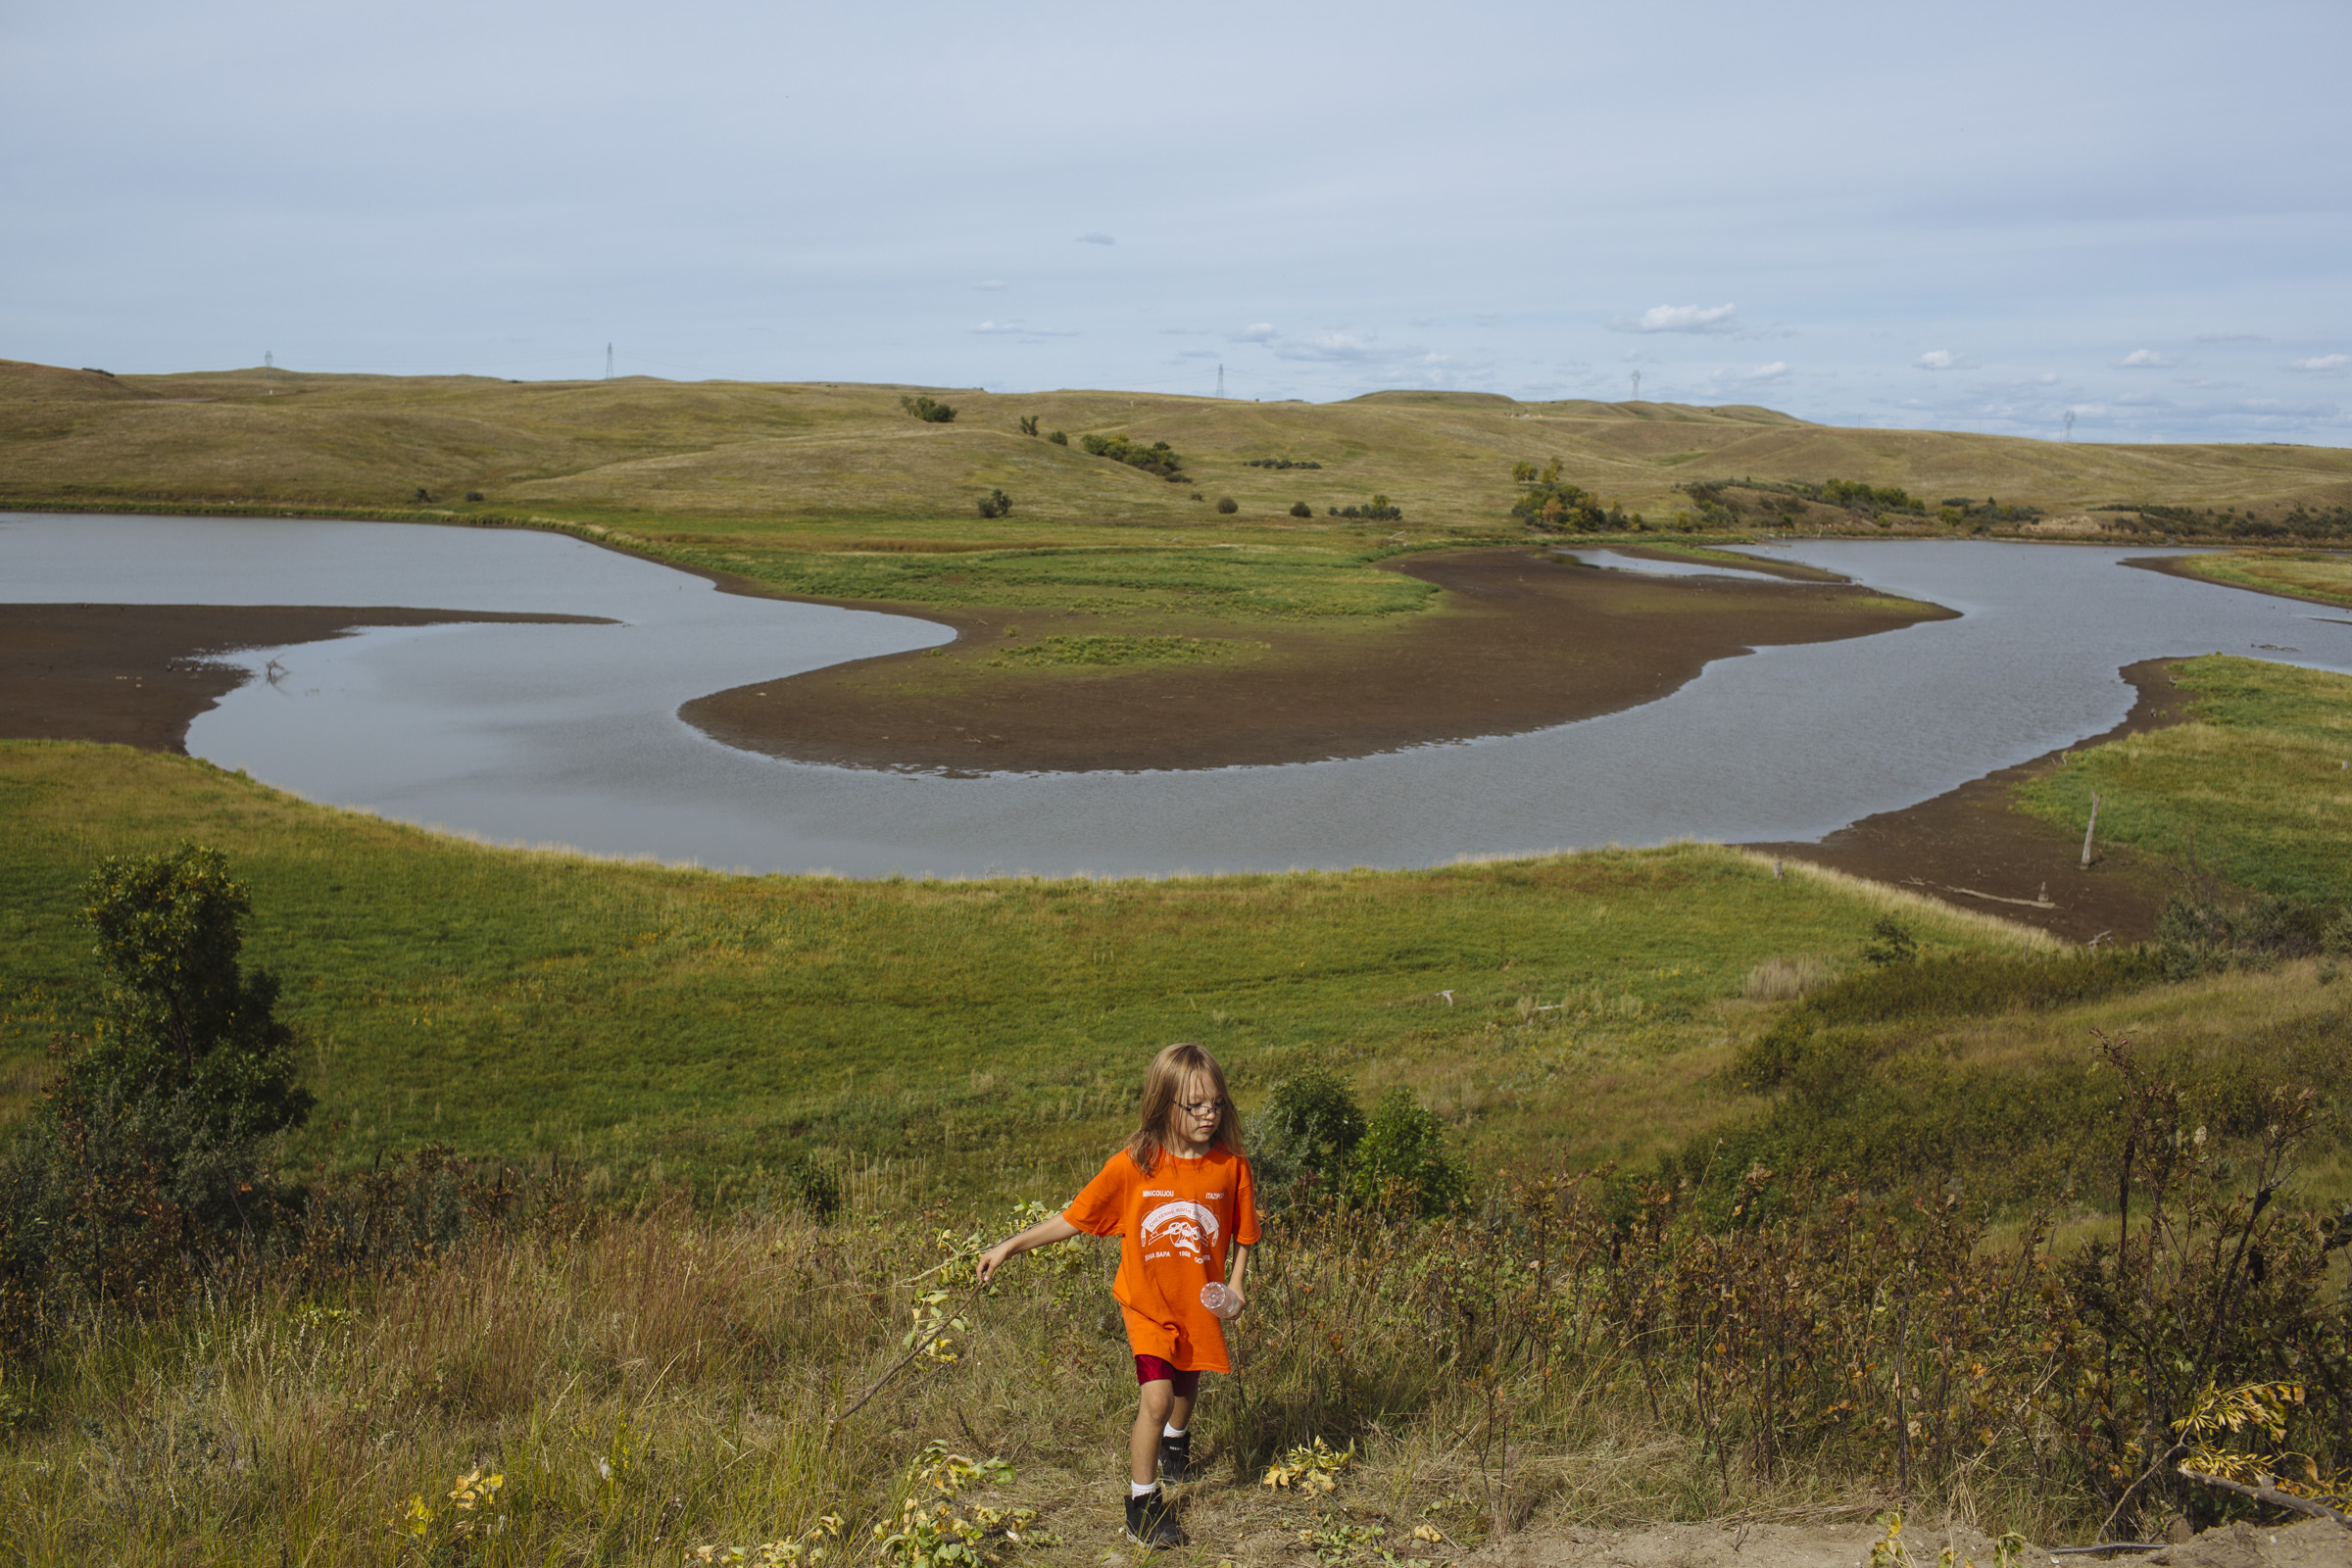 Royrie Scott, 7, of the Lakota Sioux Tribe plays on a hill overlooking a tributary which runs in to the Missouri River on Saturday, Sept. 10, 2016. The electrical poles on the horizon mark an existing utility corridor, which the Dakota Access Pipeline will follow through the region. (Photo by Angus Mordant/GroundTruth)